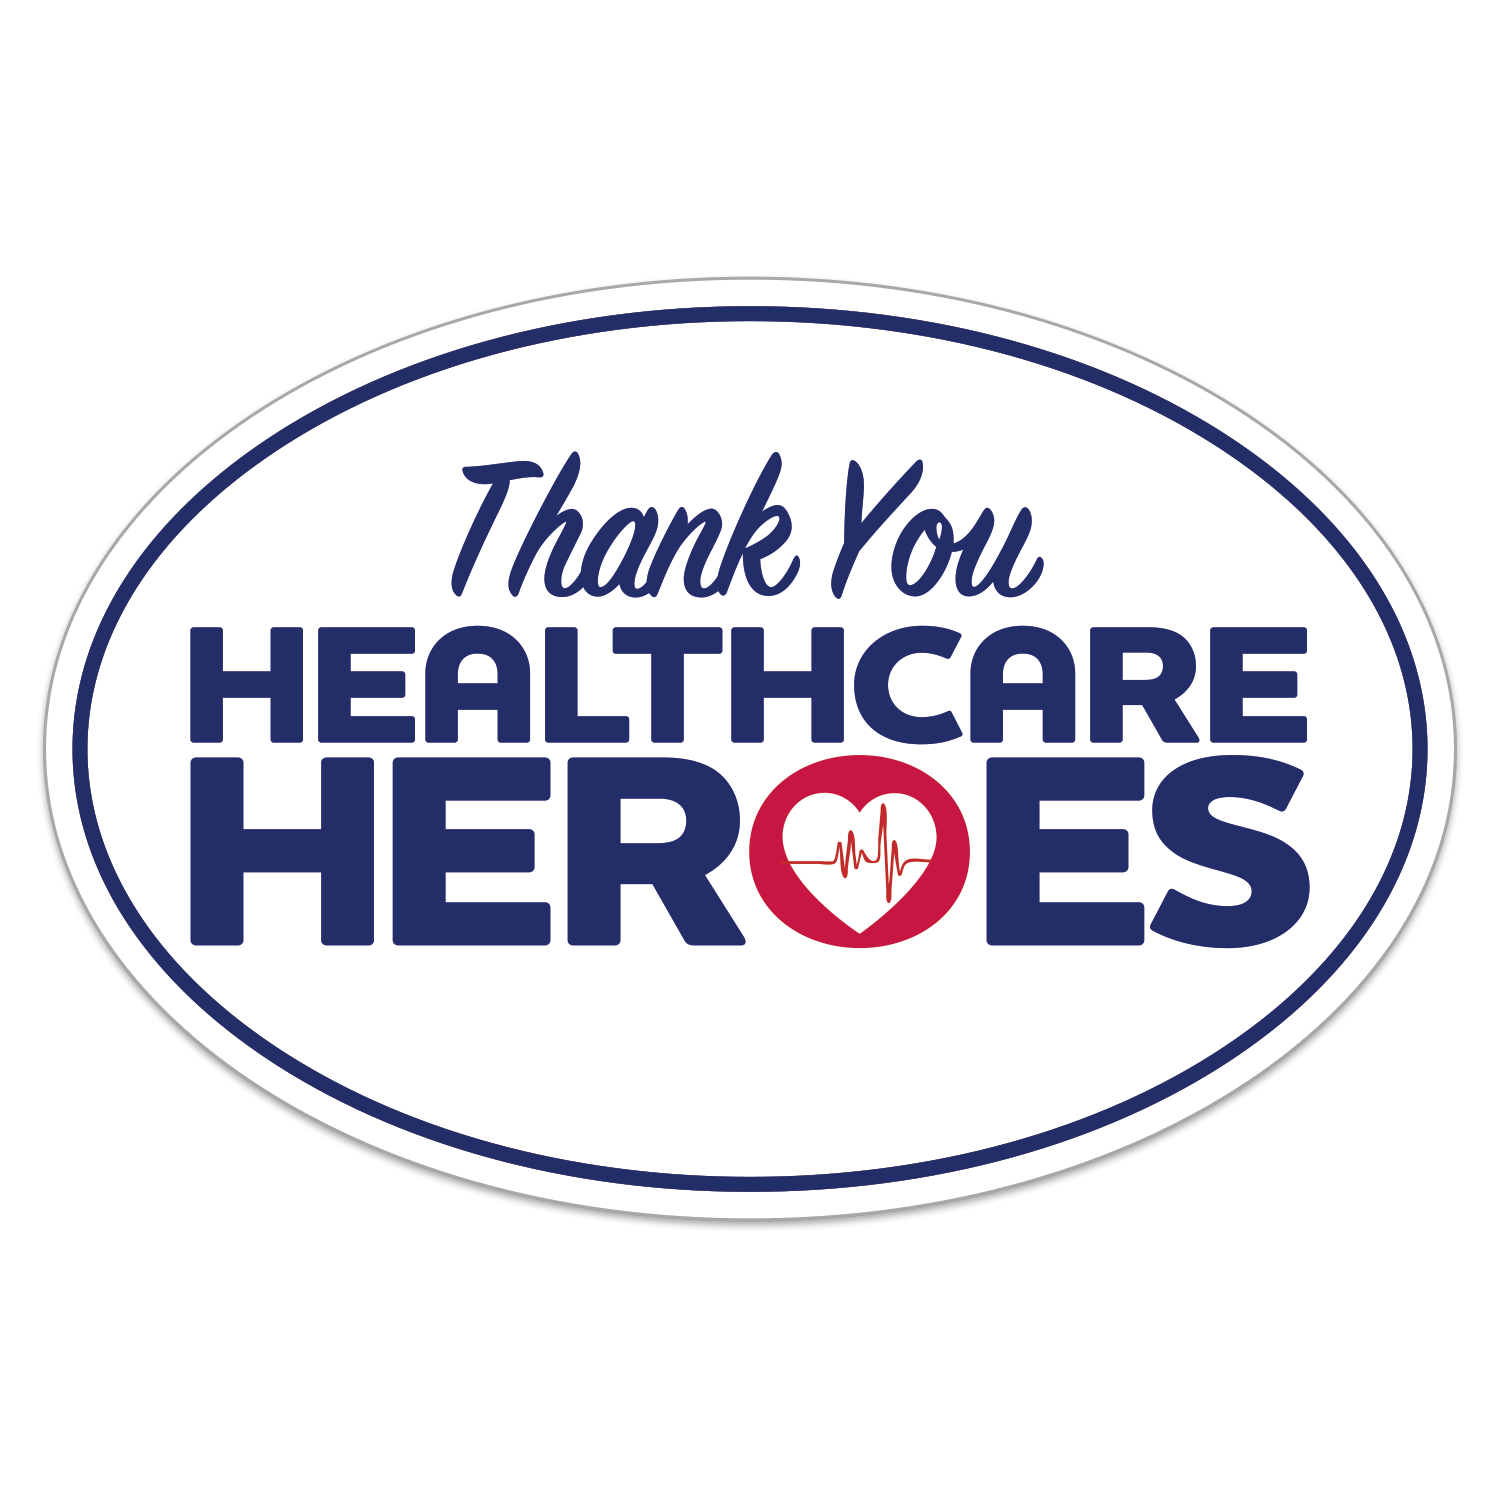 https://www.sswprinting.com/images/products_gallery_images/595201_Healthcare-Heroes_hi-res12.png